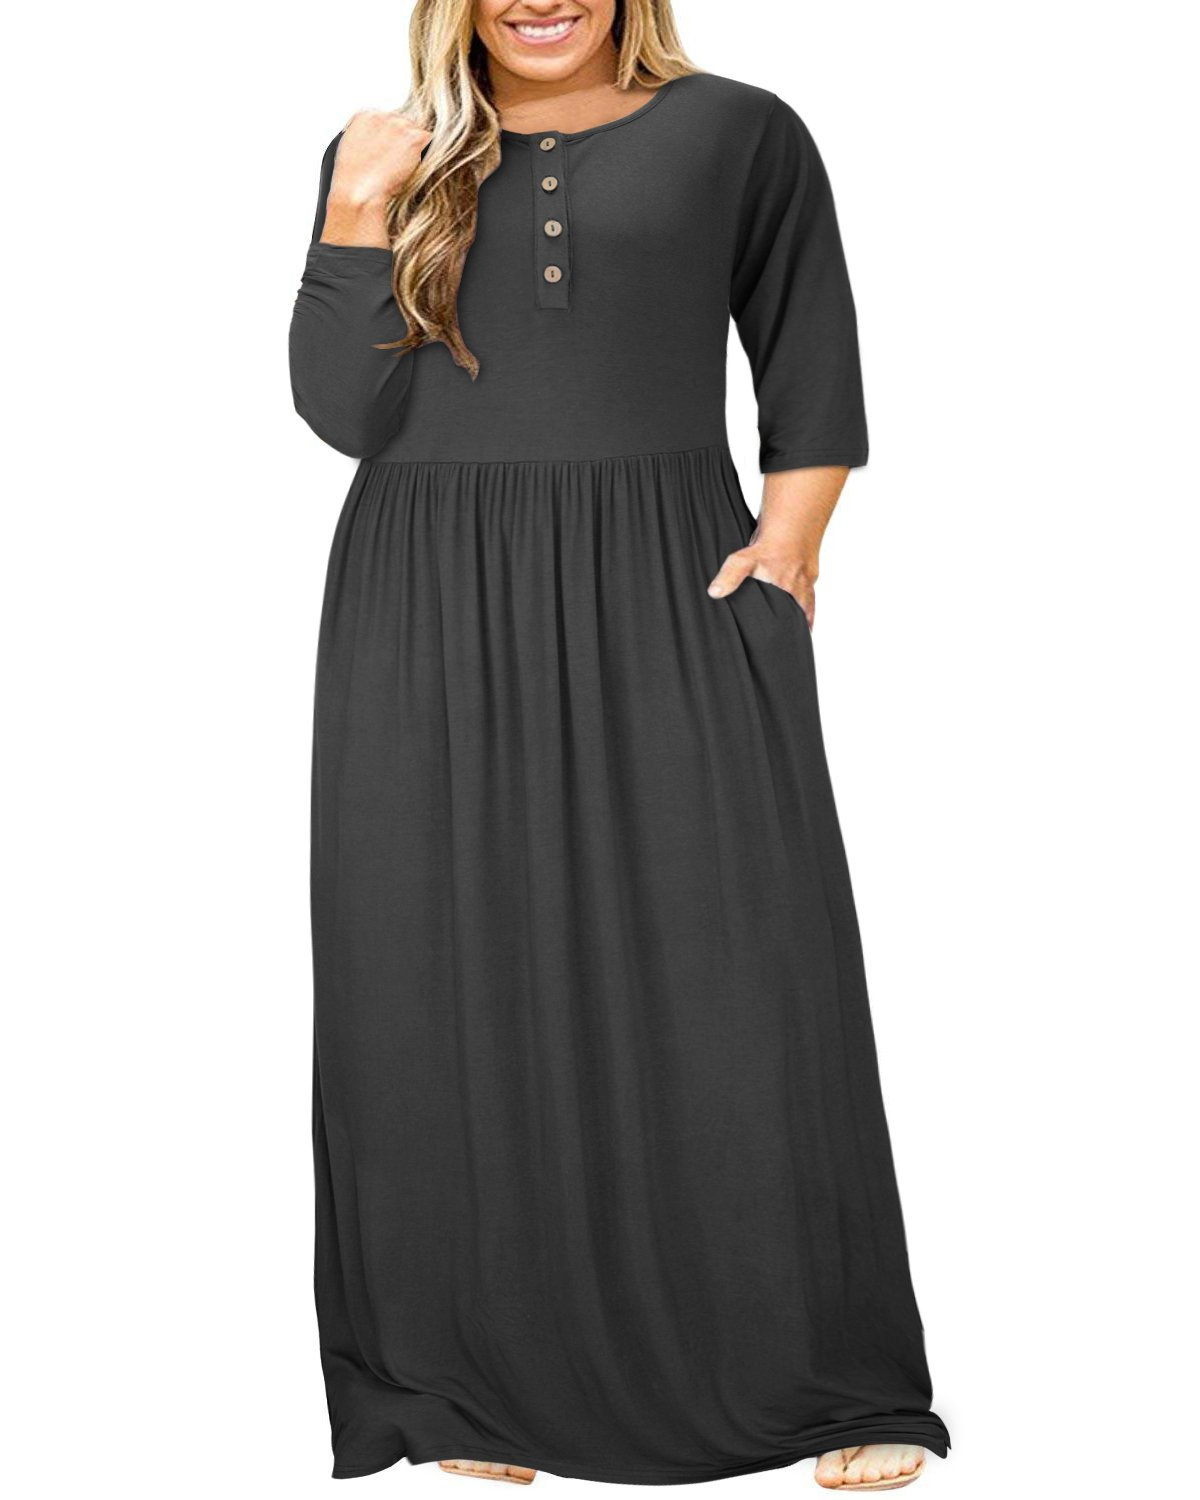 ULTRANICE Women 3/4 Sleeve Plus Size Button Solid Maxi Long Dress with Pockets (Black,3XL)